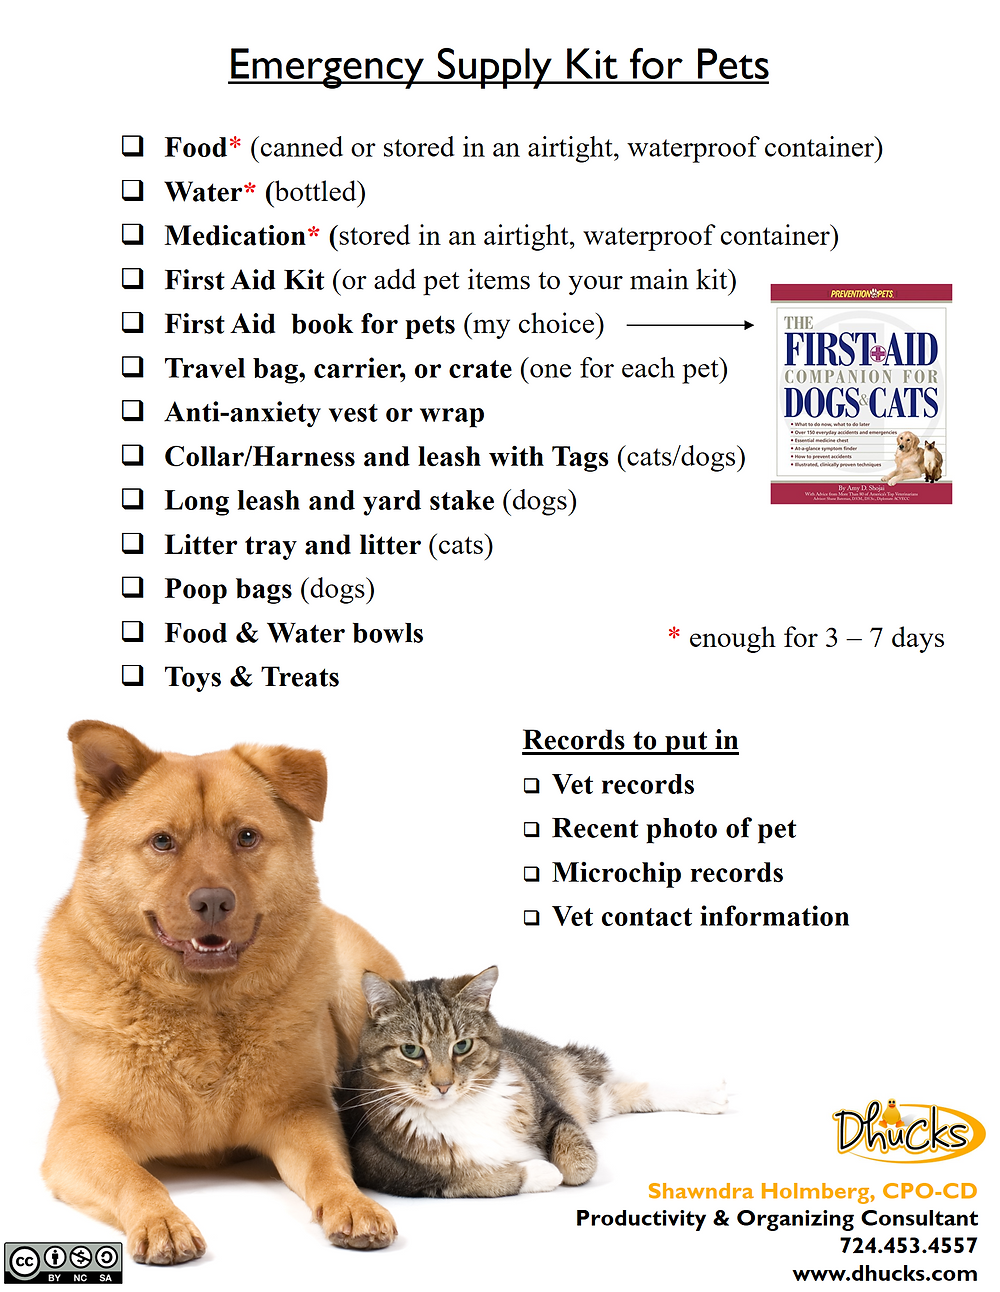 Click and use promo code FREE to download a copy of the Emergency Supply Kit list for Pets